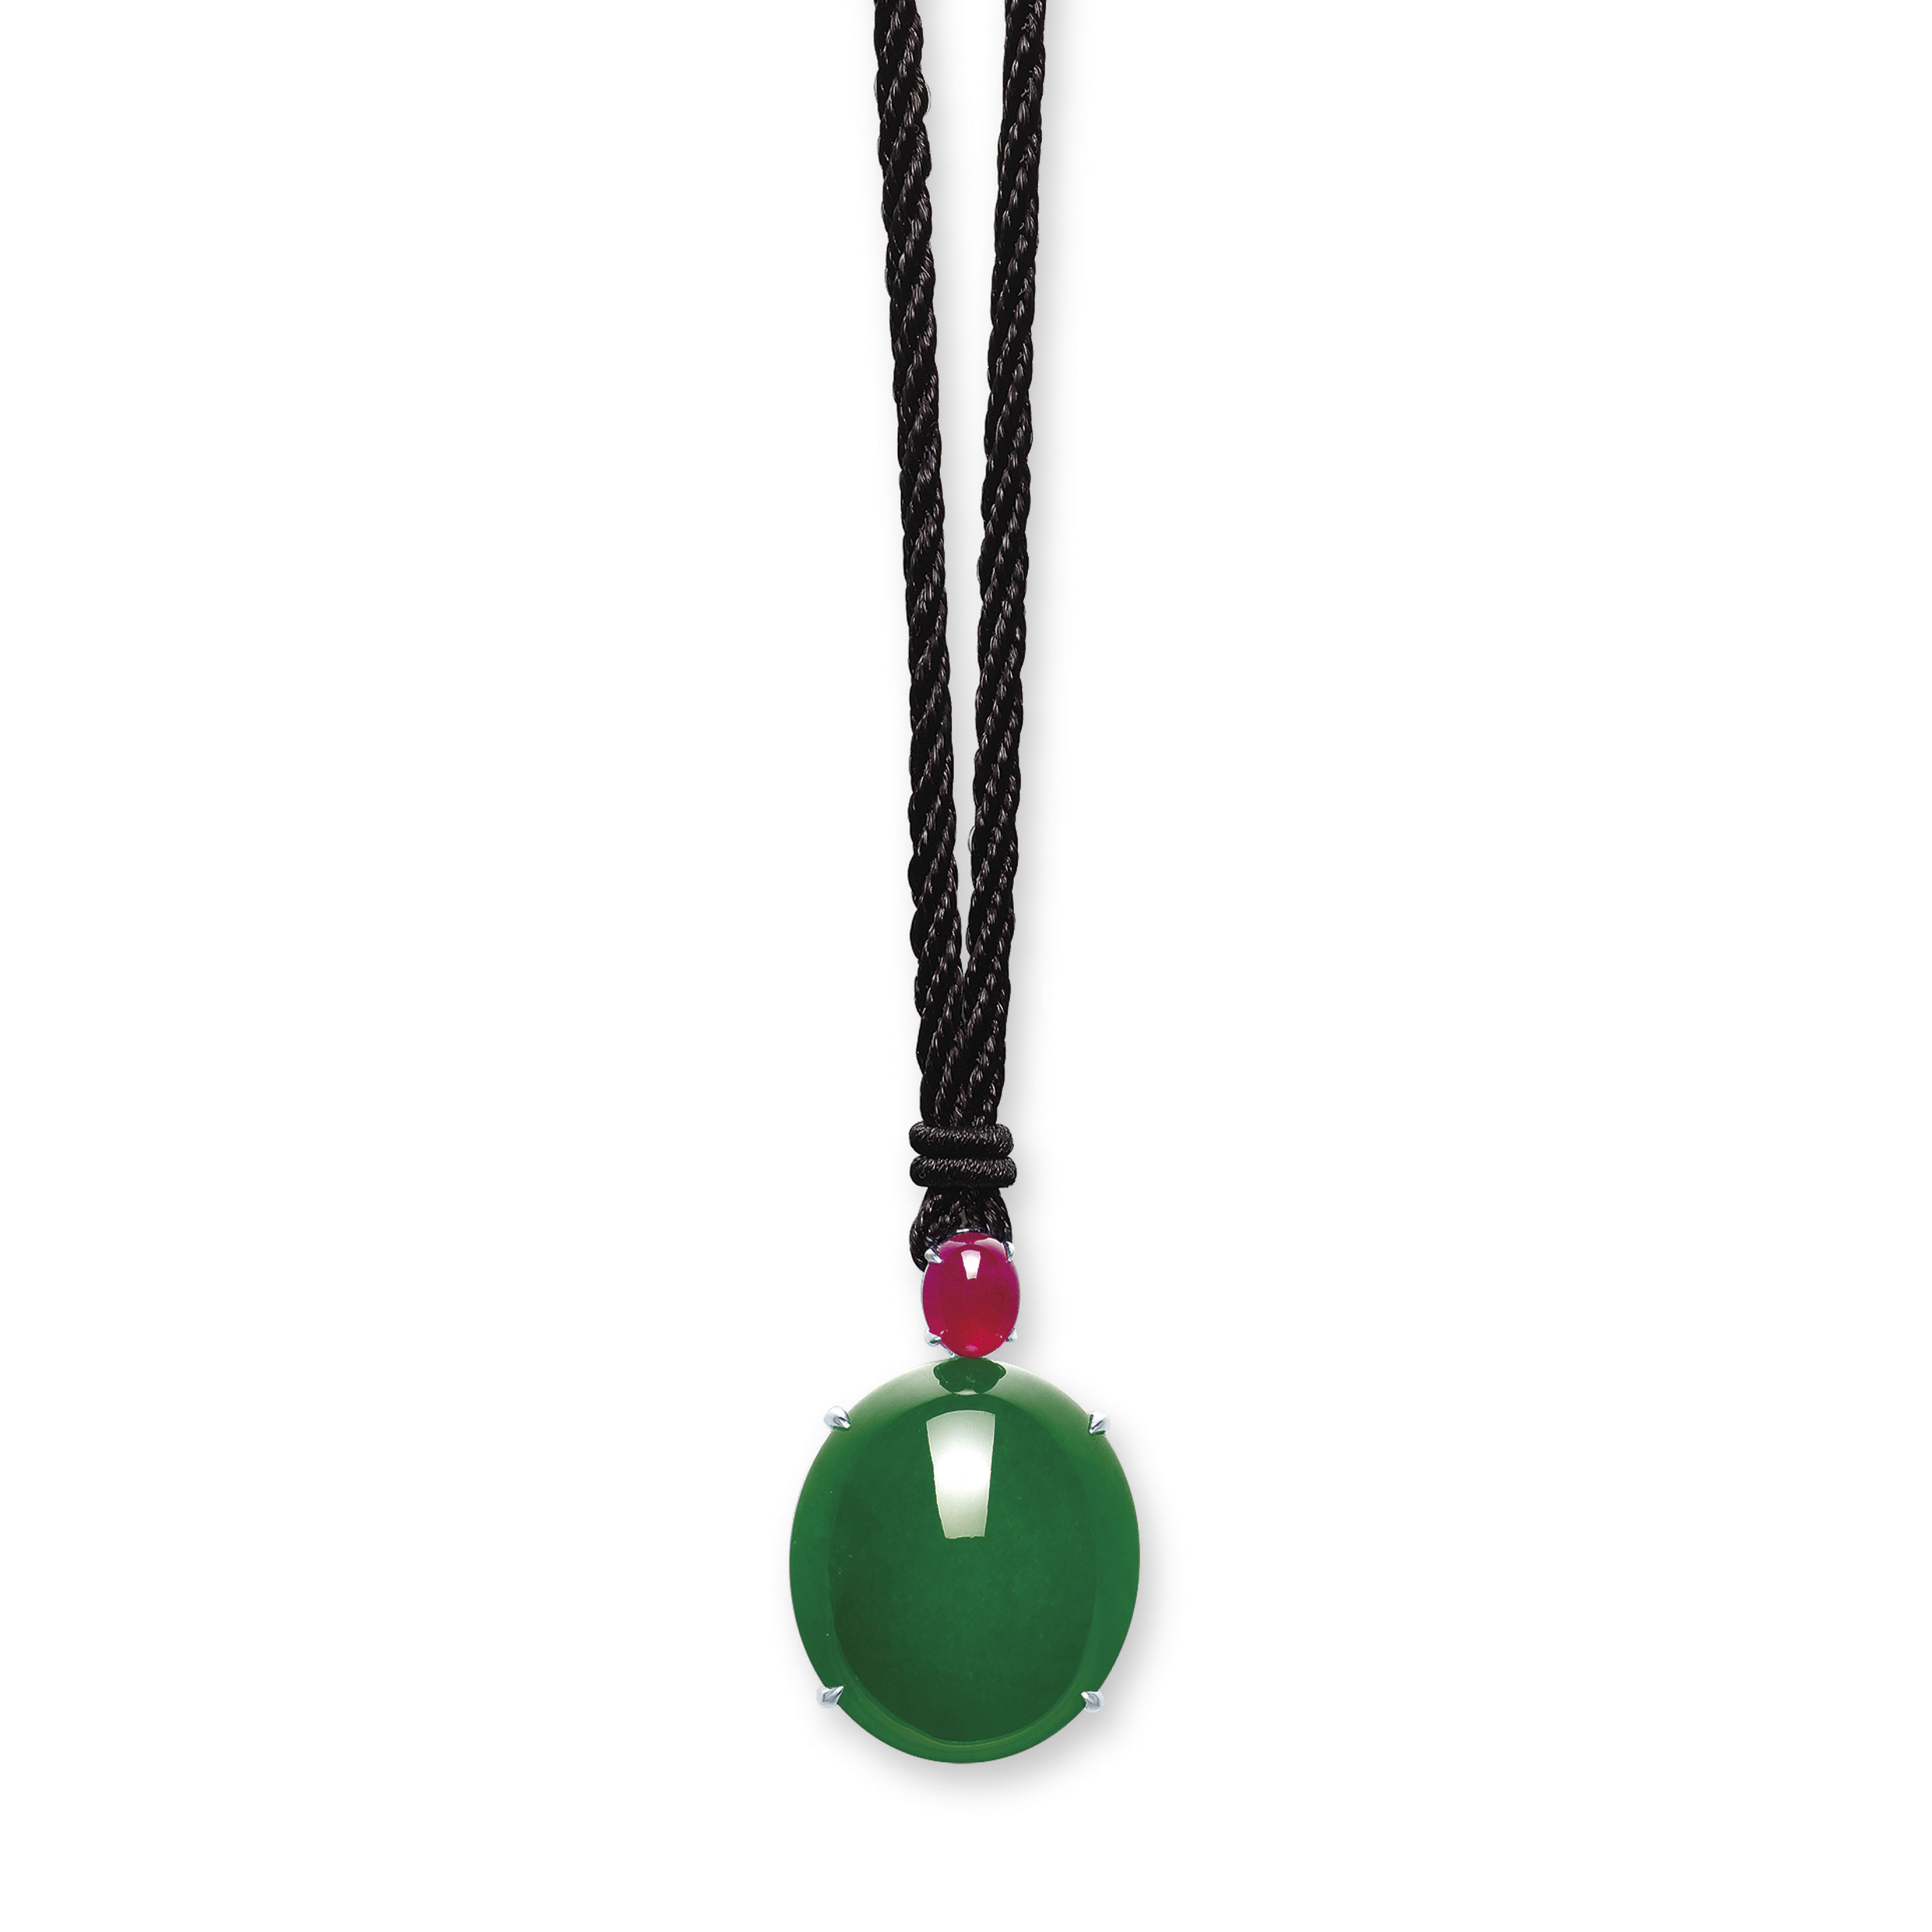 AN IMPORTANT JADEITE AND RUBY PENDANT NECKLACE